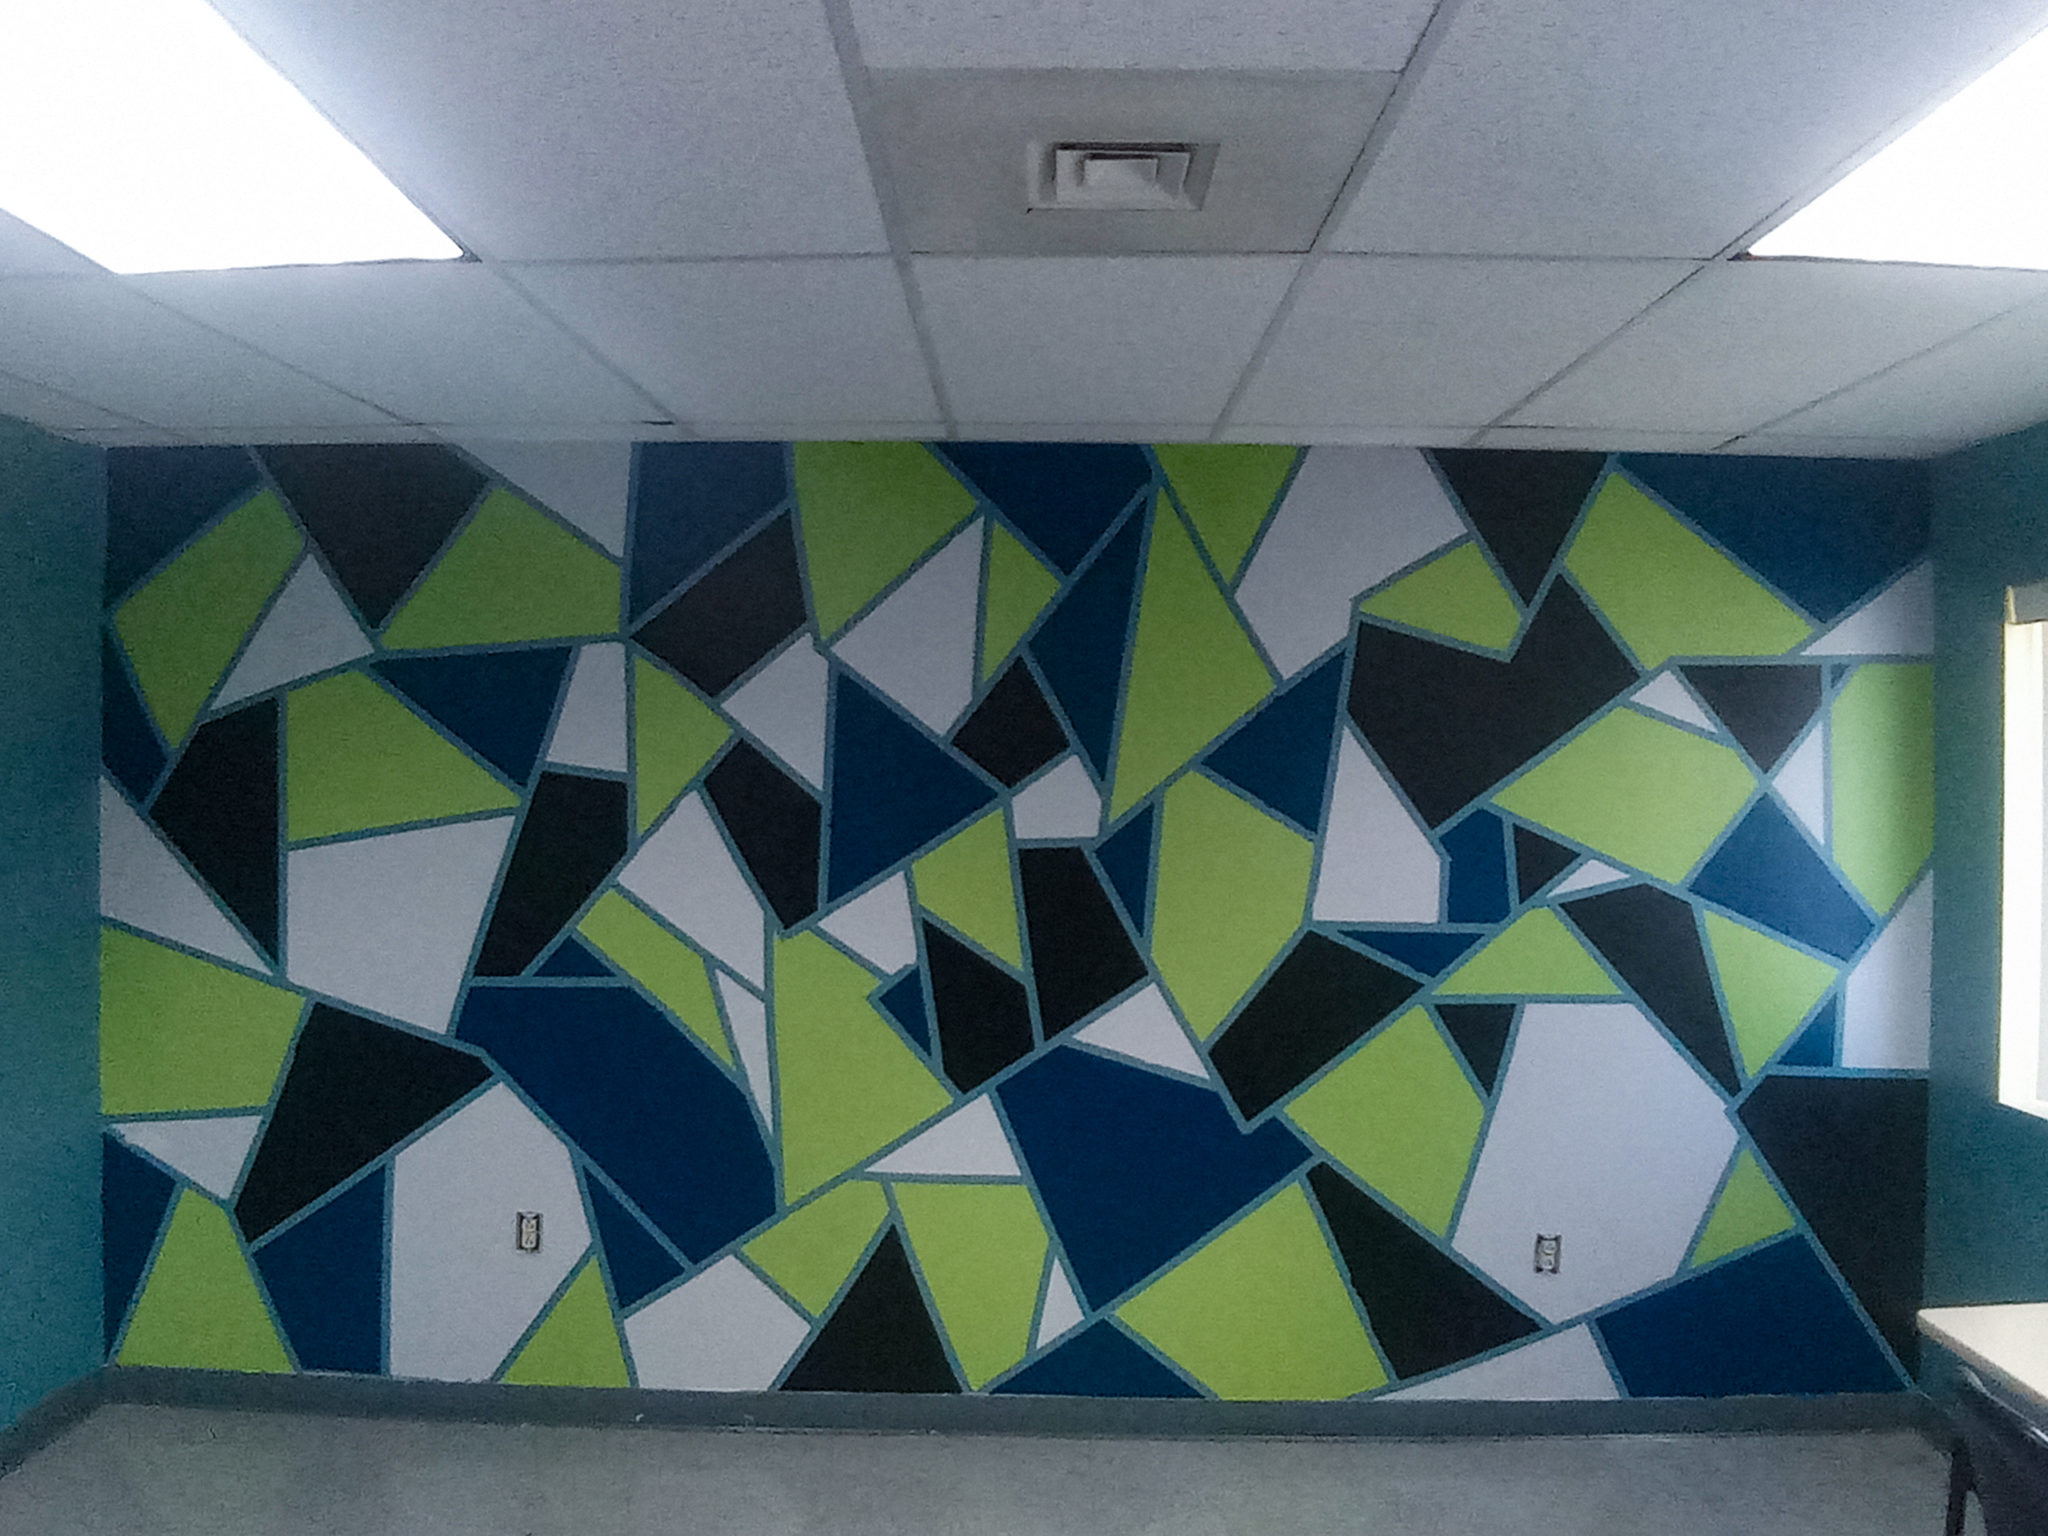 A picture of the finished wall with its newly painted design